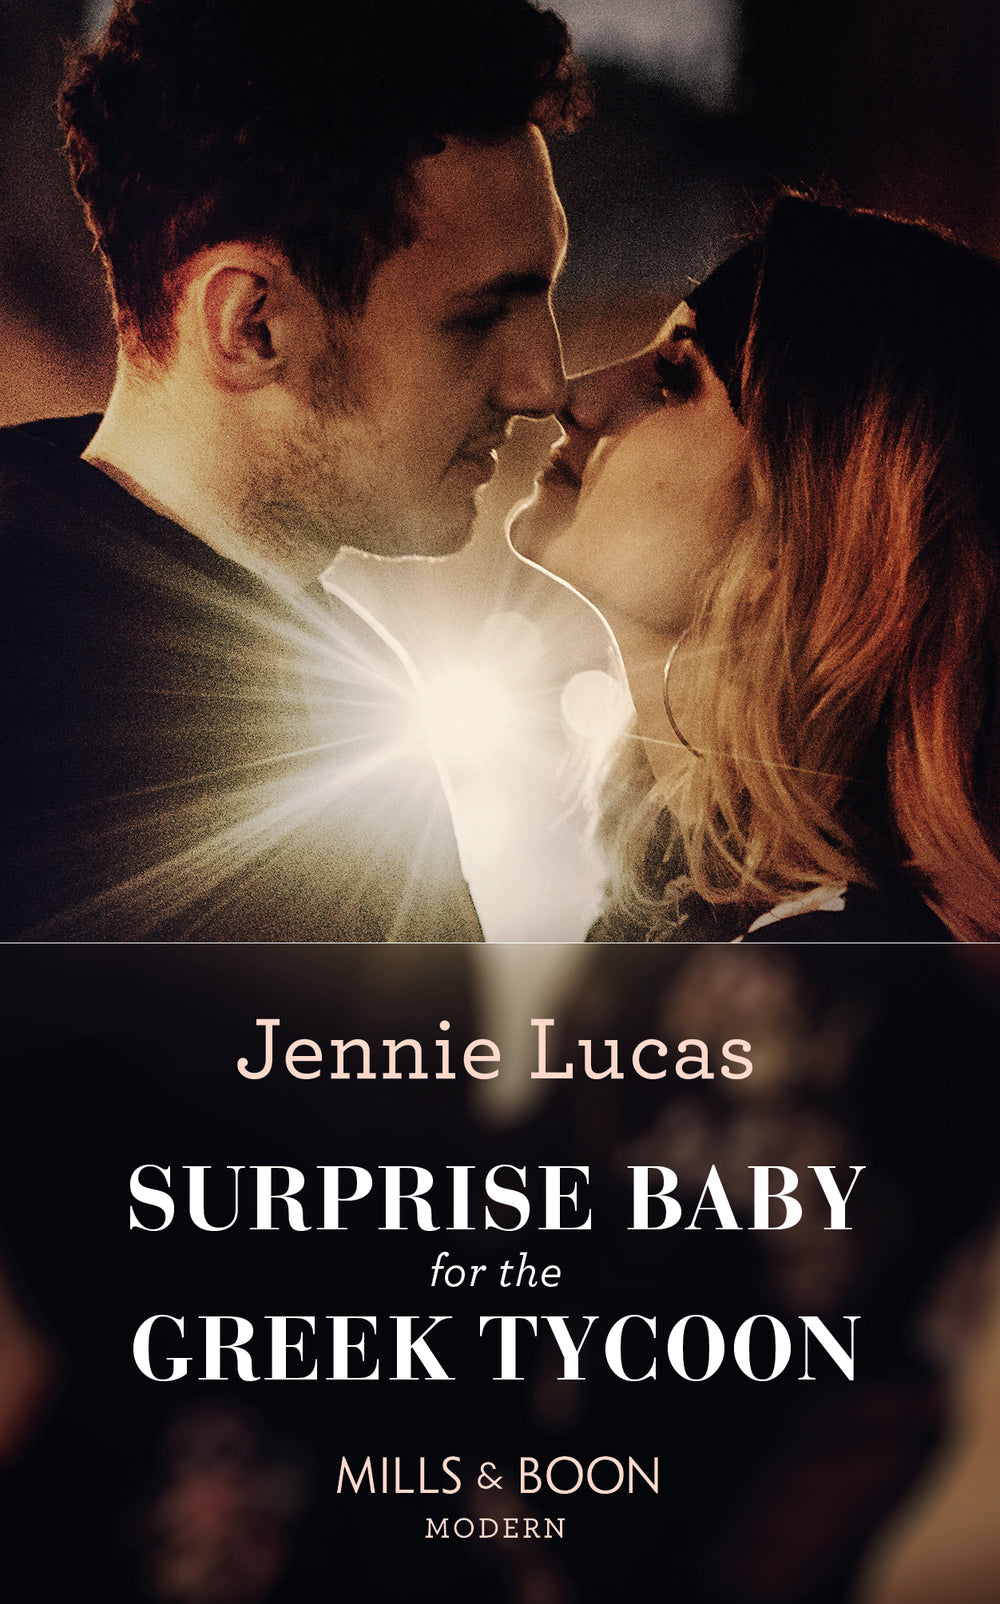 Surprise Baby for the Greek Tycoon - Chapter 19